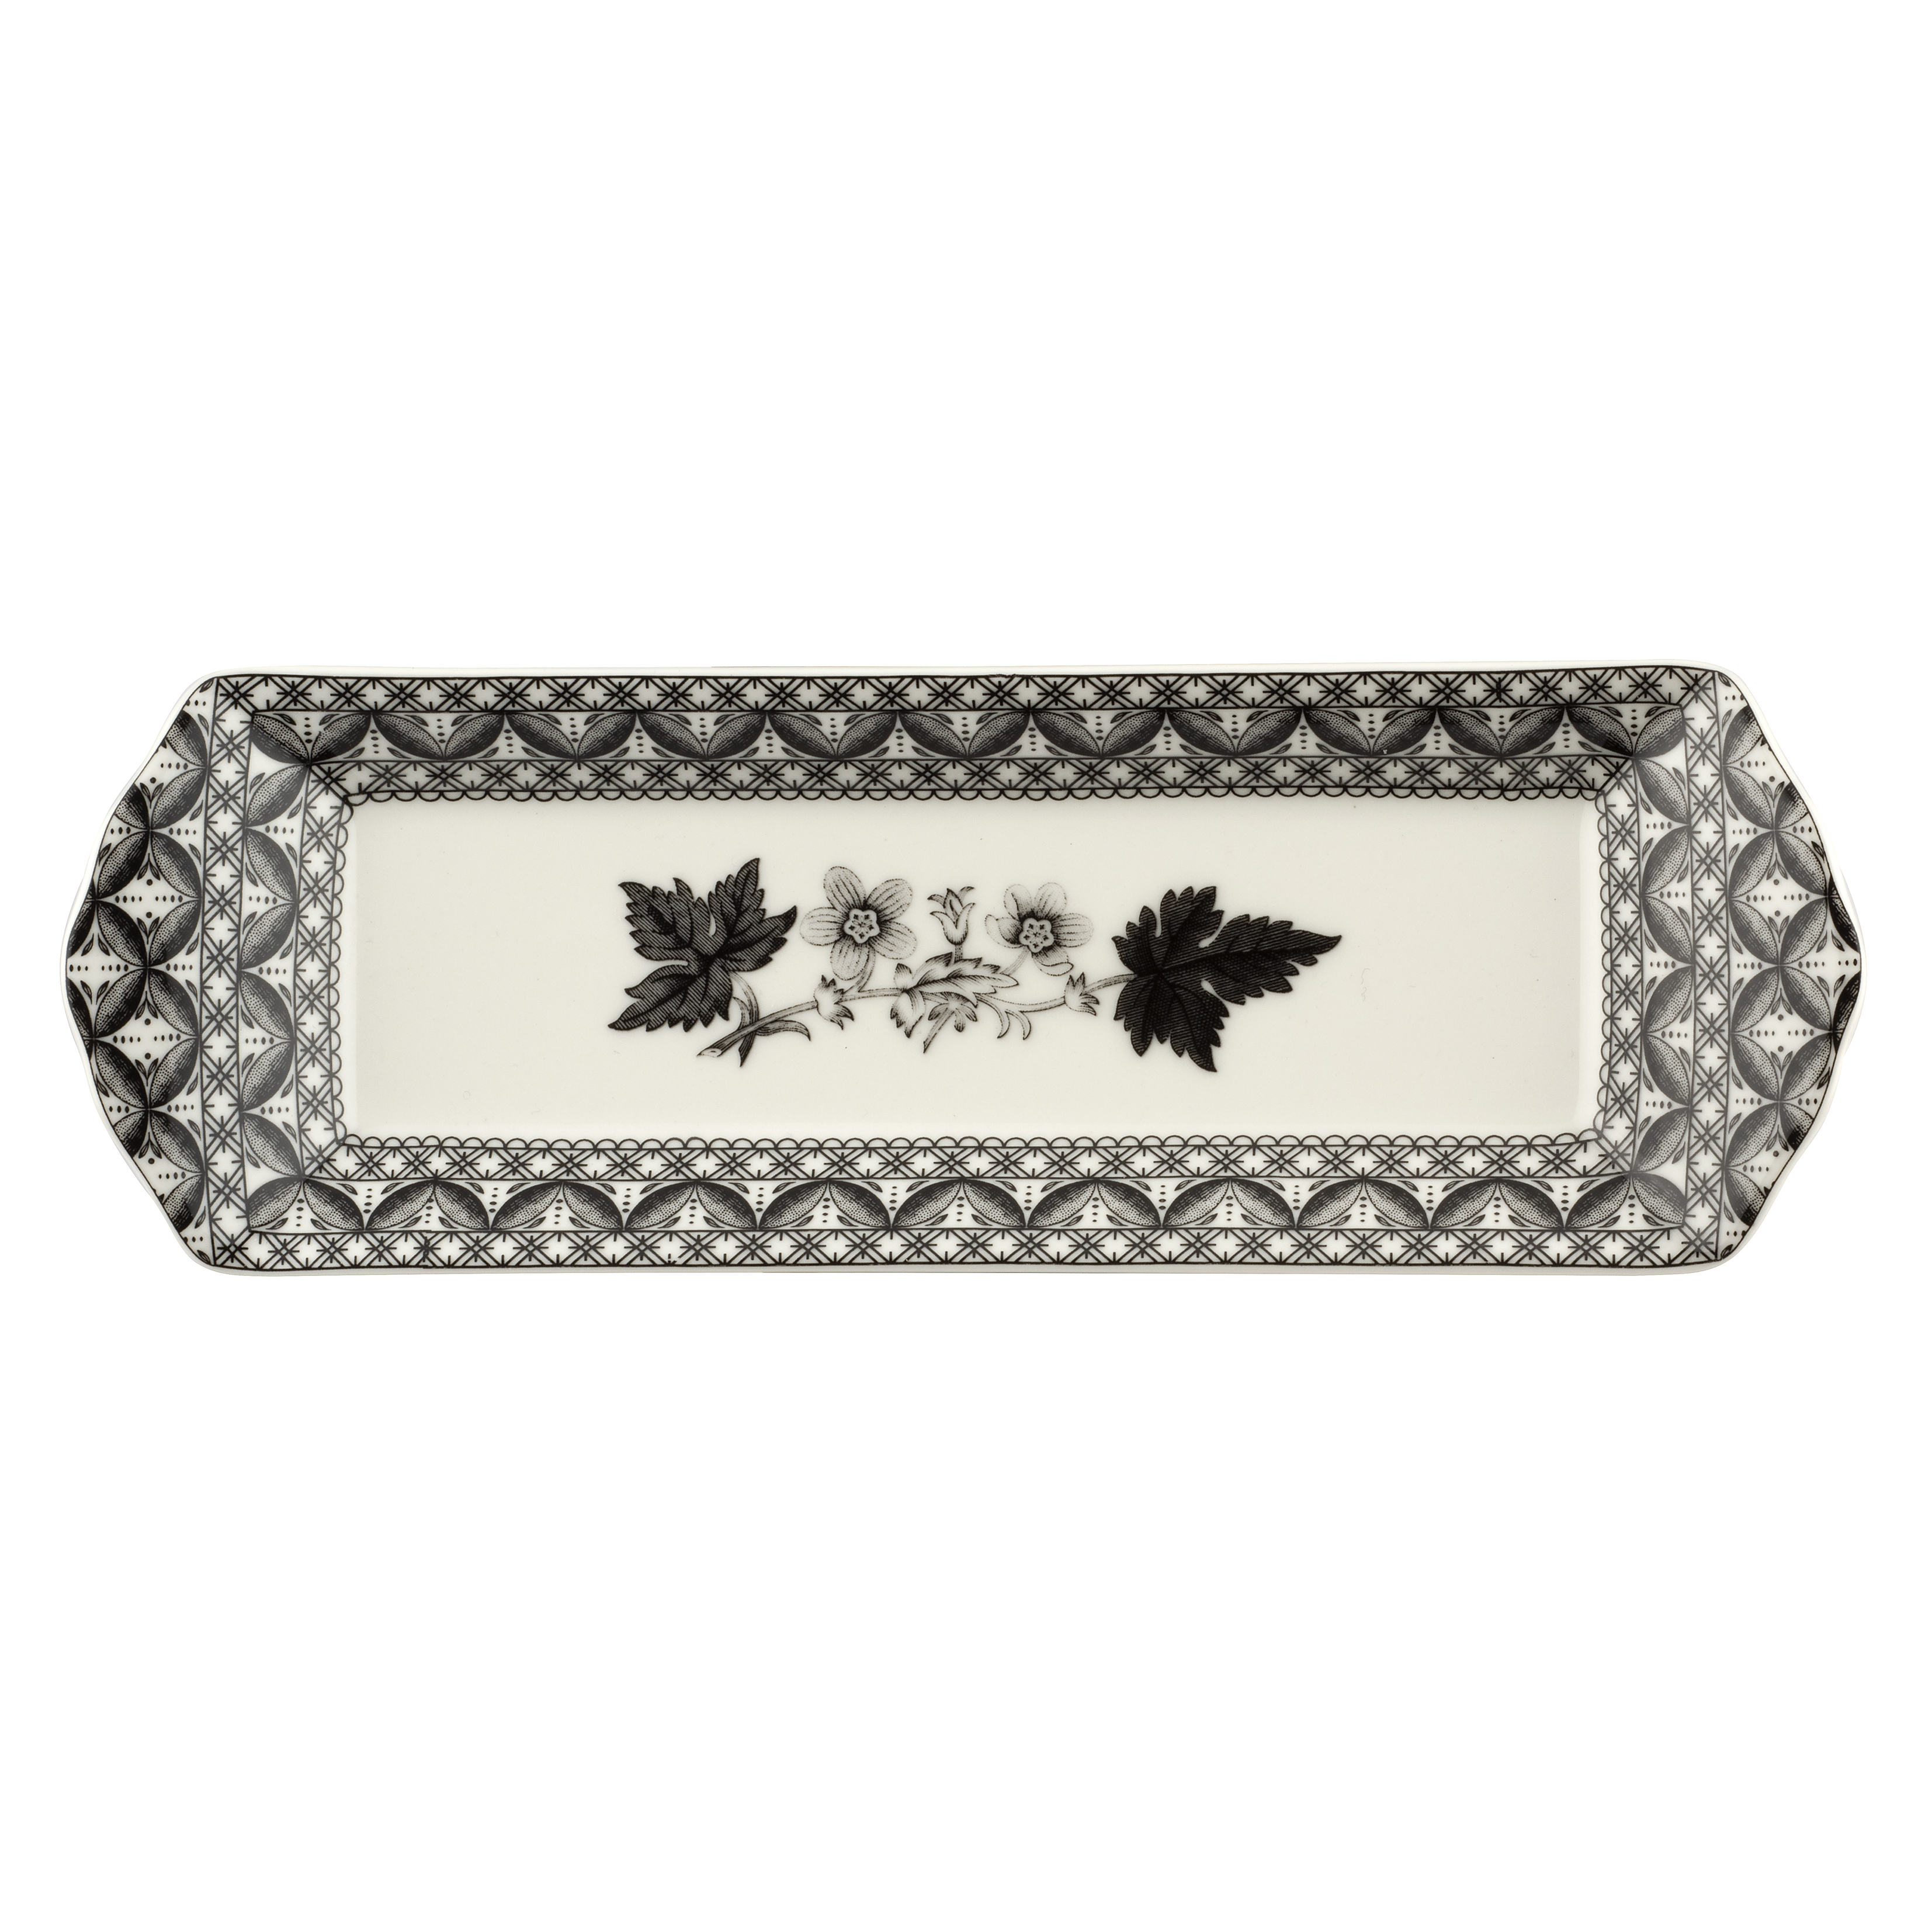 Spode Heritage 9 Inch Small Tray (Geranium) image number 0